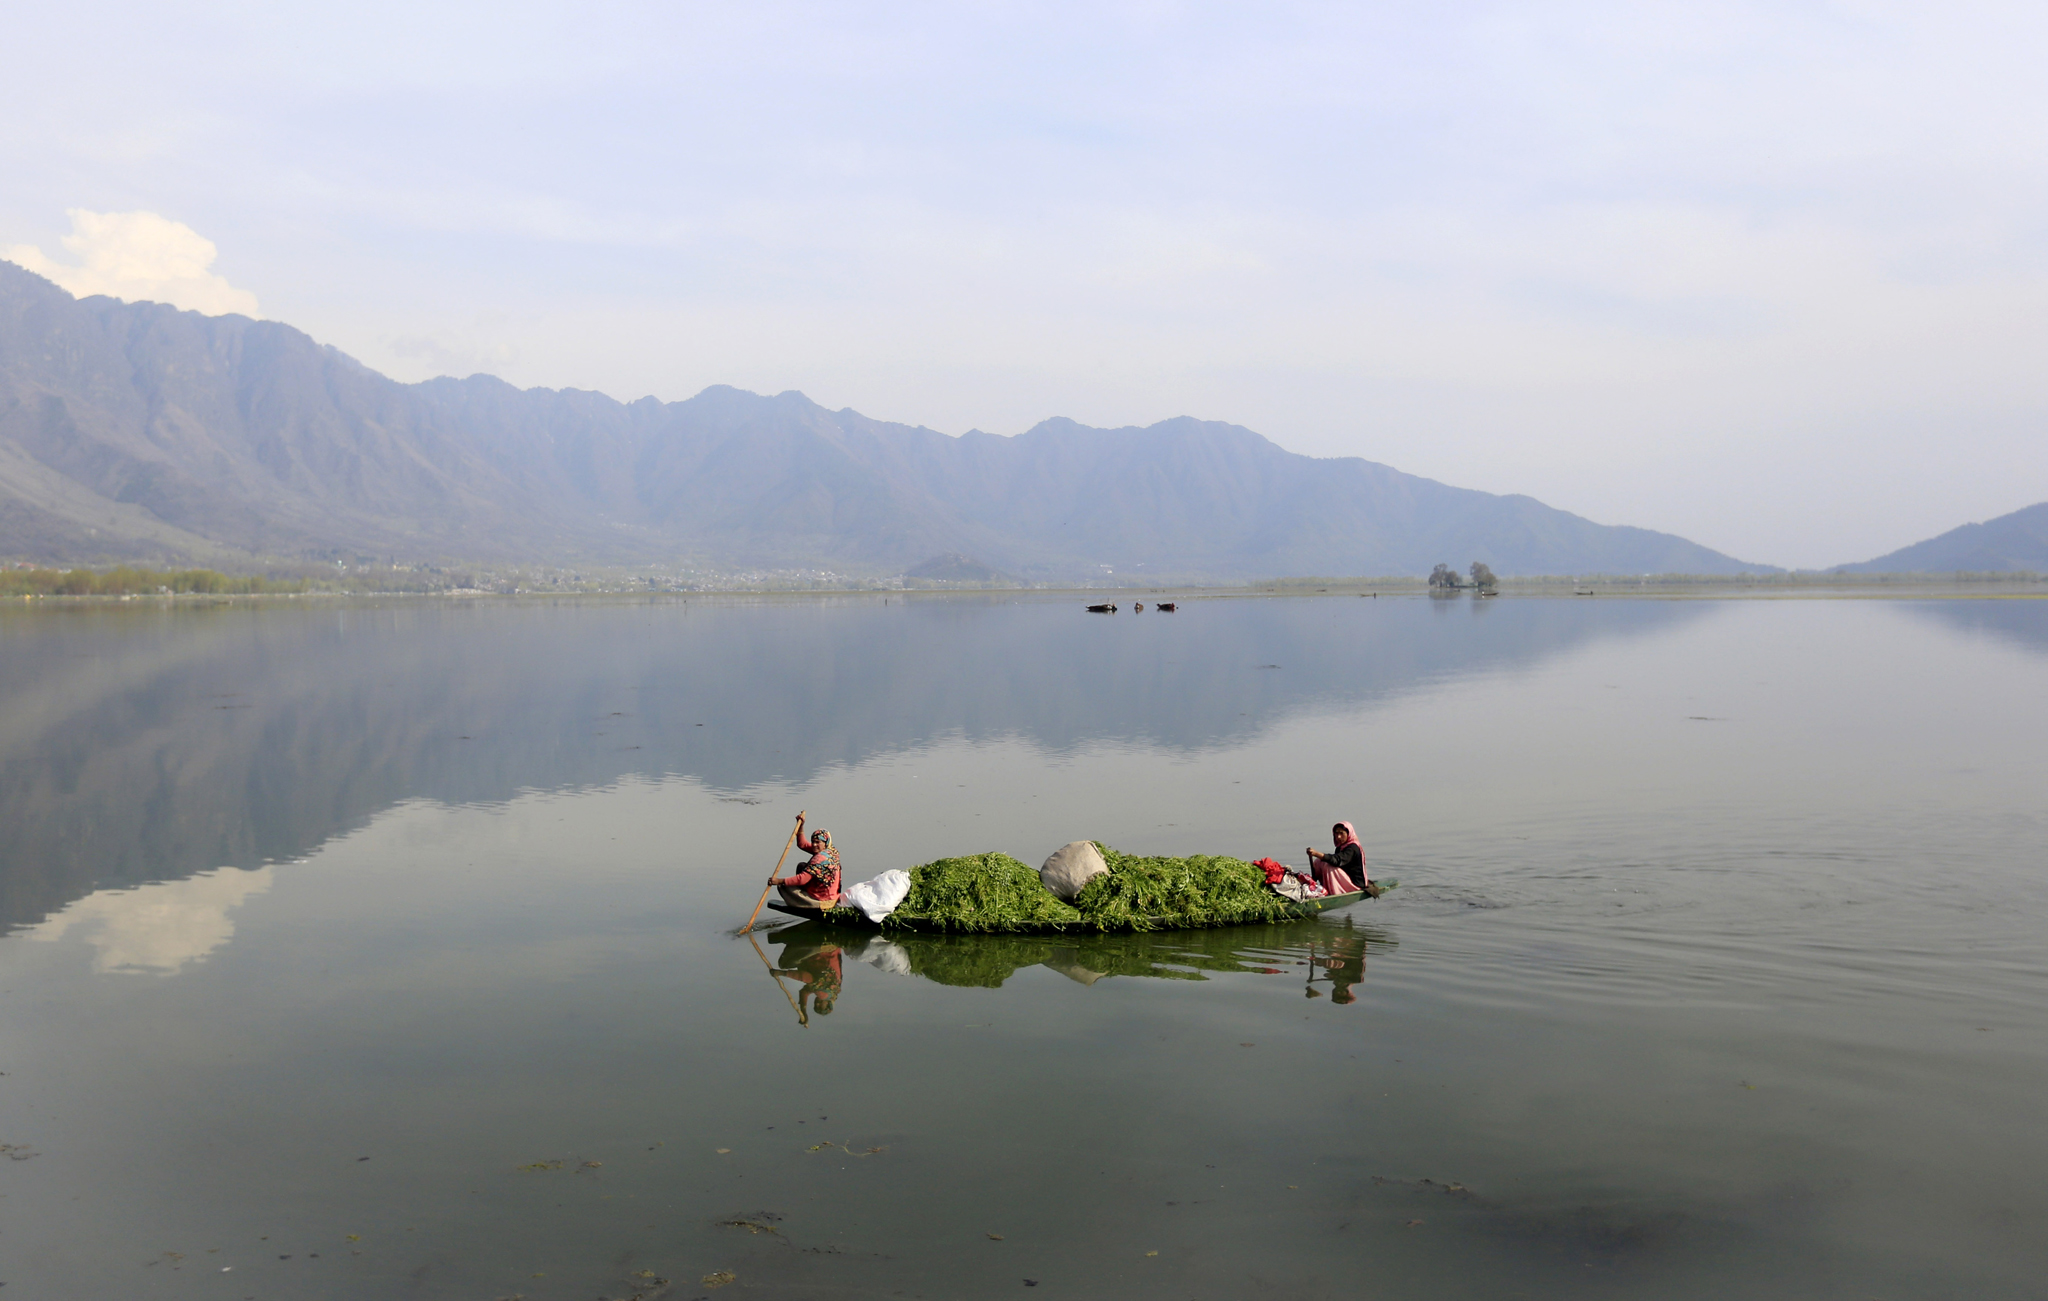 Kashmiri women row a boat filled with weed after cleaning the Dal Lake on Earth Day, on the outskirts of Srinagar, India, Tuesday, April 22, 2014. The weed-clogged Dal Lake is central to Kashmirís tourist trade and efforts are being made to rescue the lake. In the past two decades the lake has shrunk by more than half, according to environmental study reports. (AP Photo/Dar Yasin)